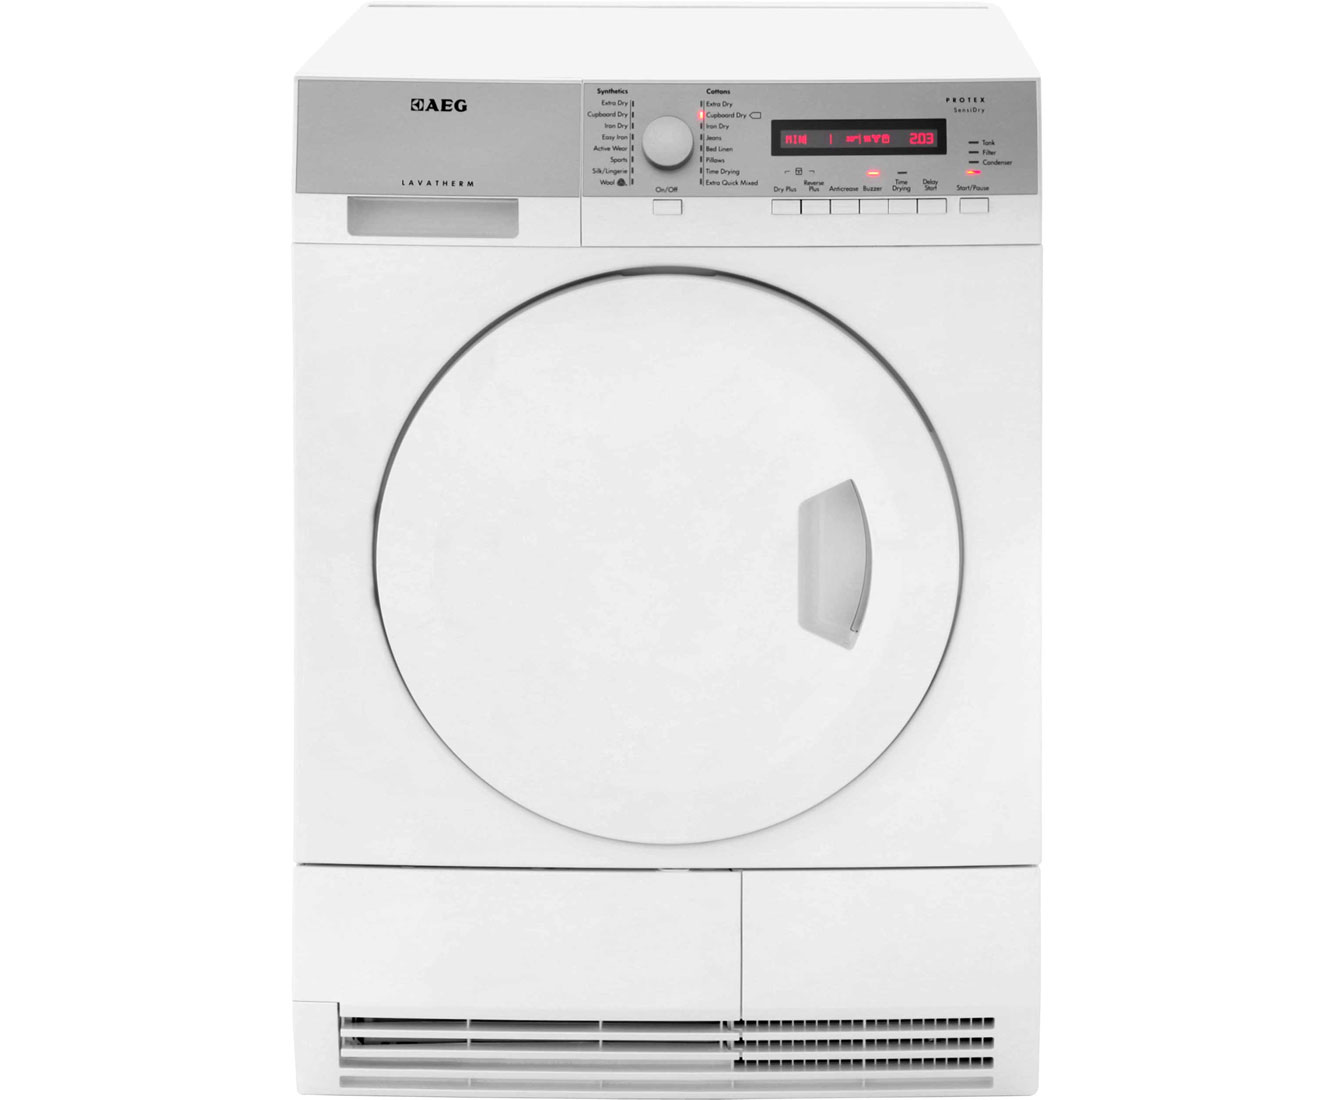 AEG Lavatherm T75380AH2 Free Standing Condenser Tumble Dryer in White